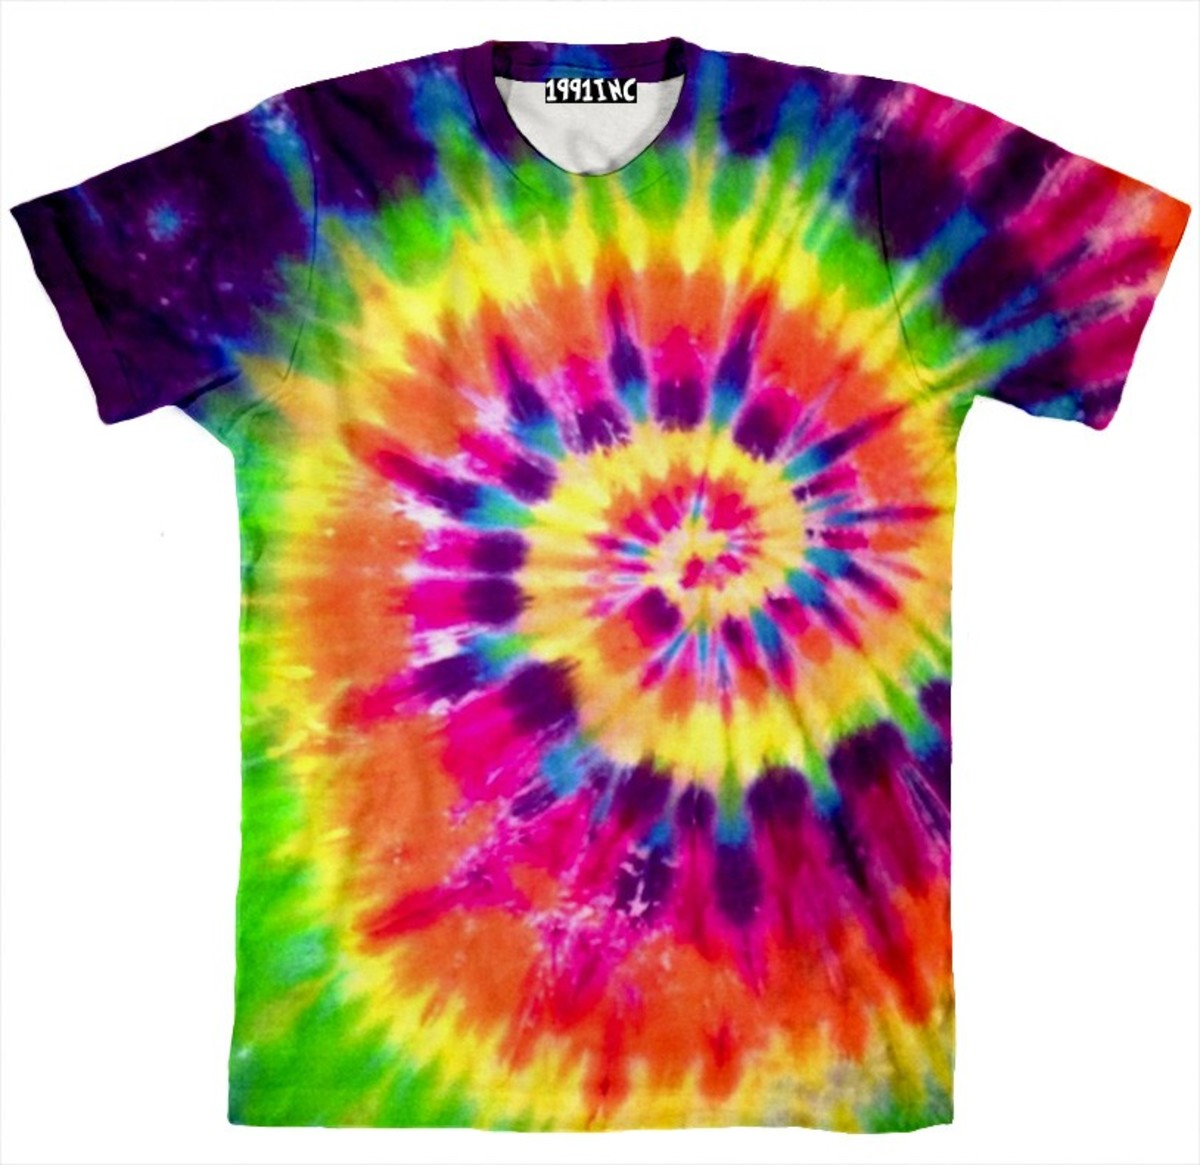 This shirt from 1991 Inc is a perfect example of how pretty tie dye can be!